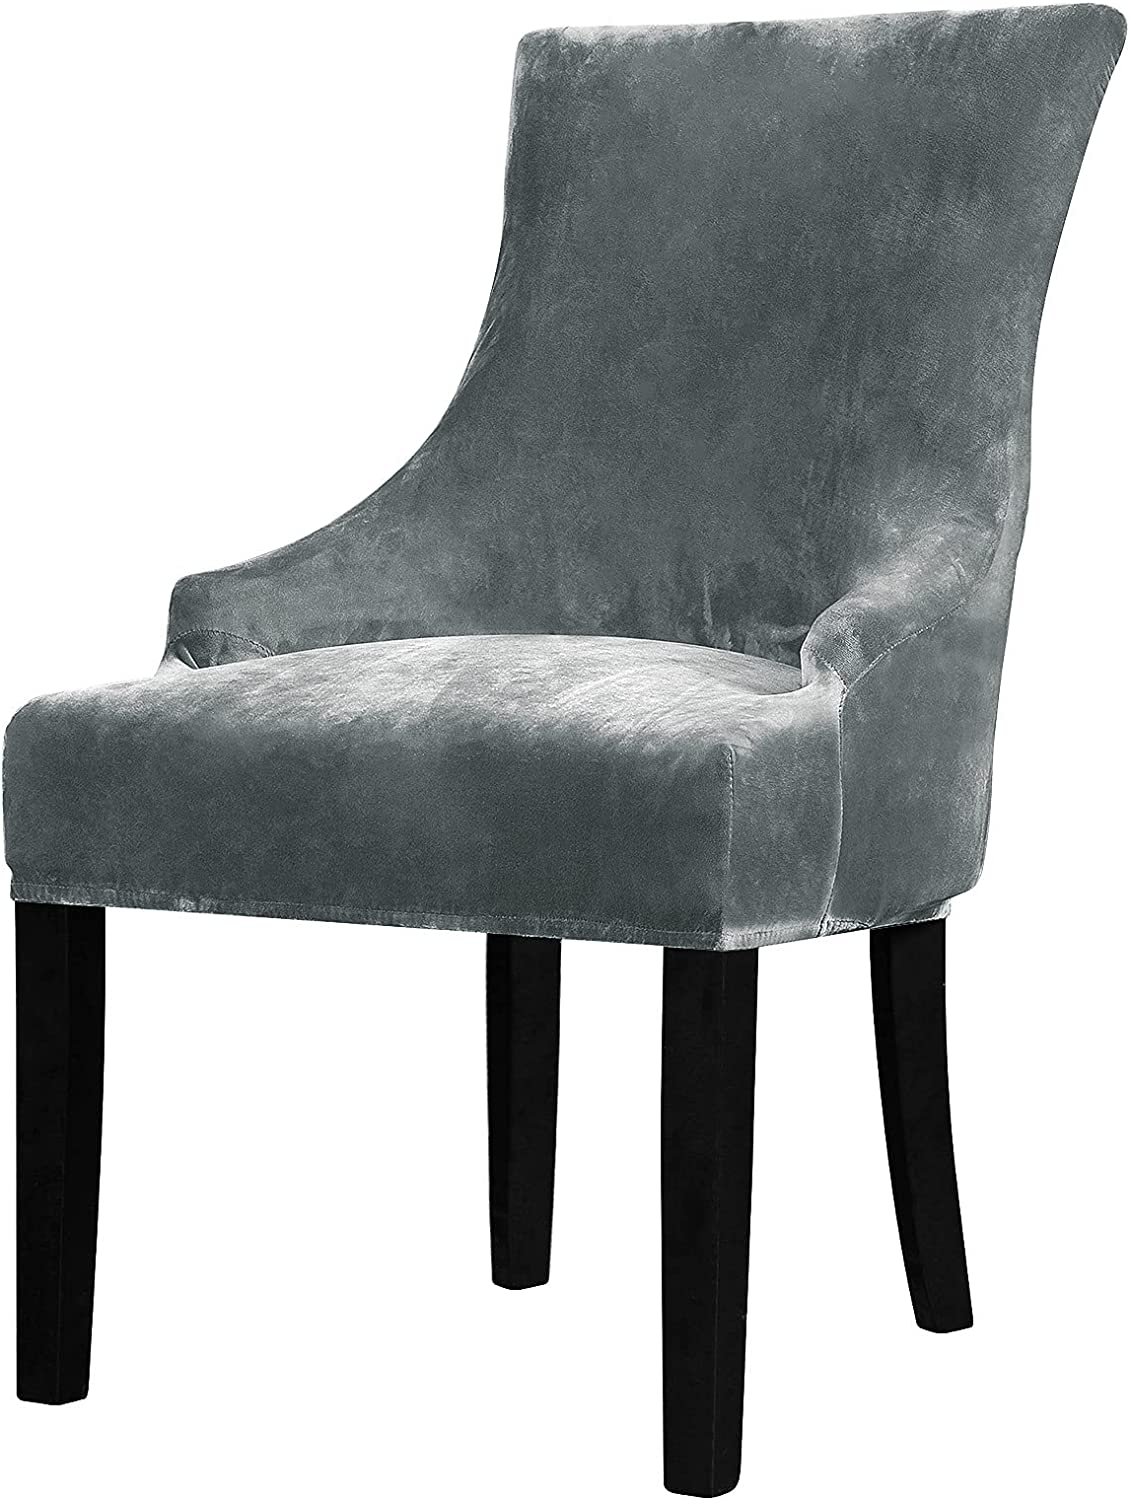 Colorado Springs Mall Lellen Velvet Stretch Our shop most popular Wingback Chair Reusable - Slipcover Cover